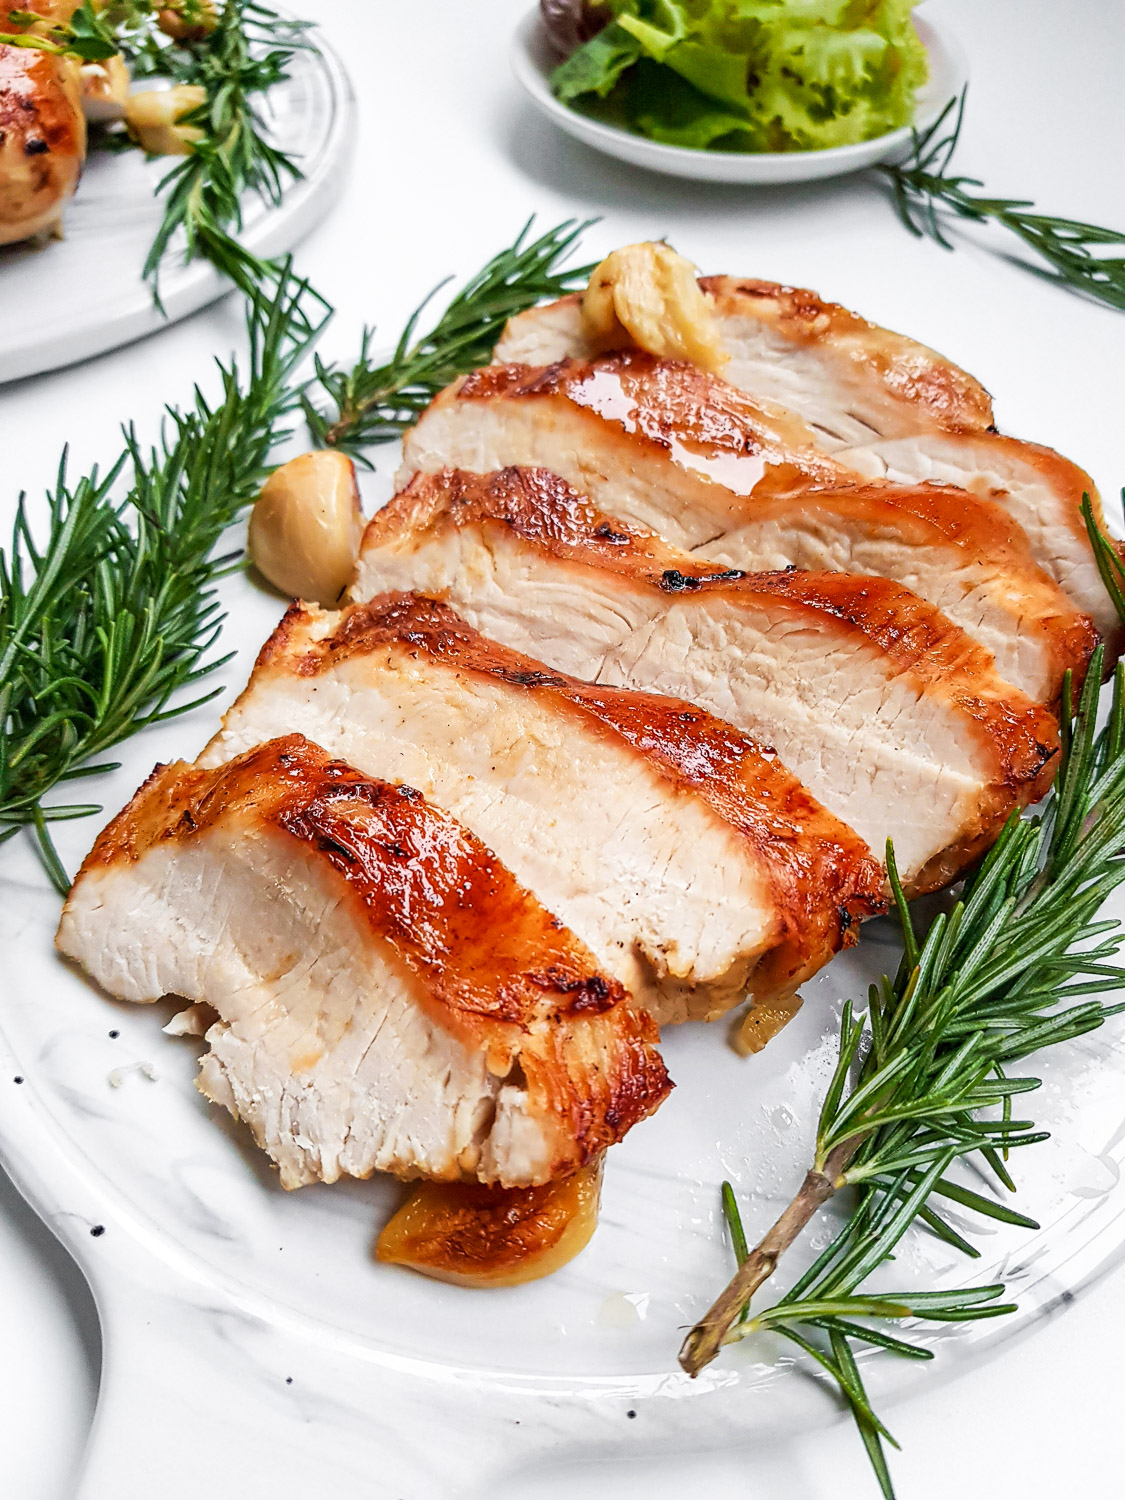 dry brined turkey breast roasted and carved